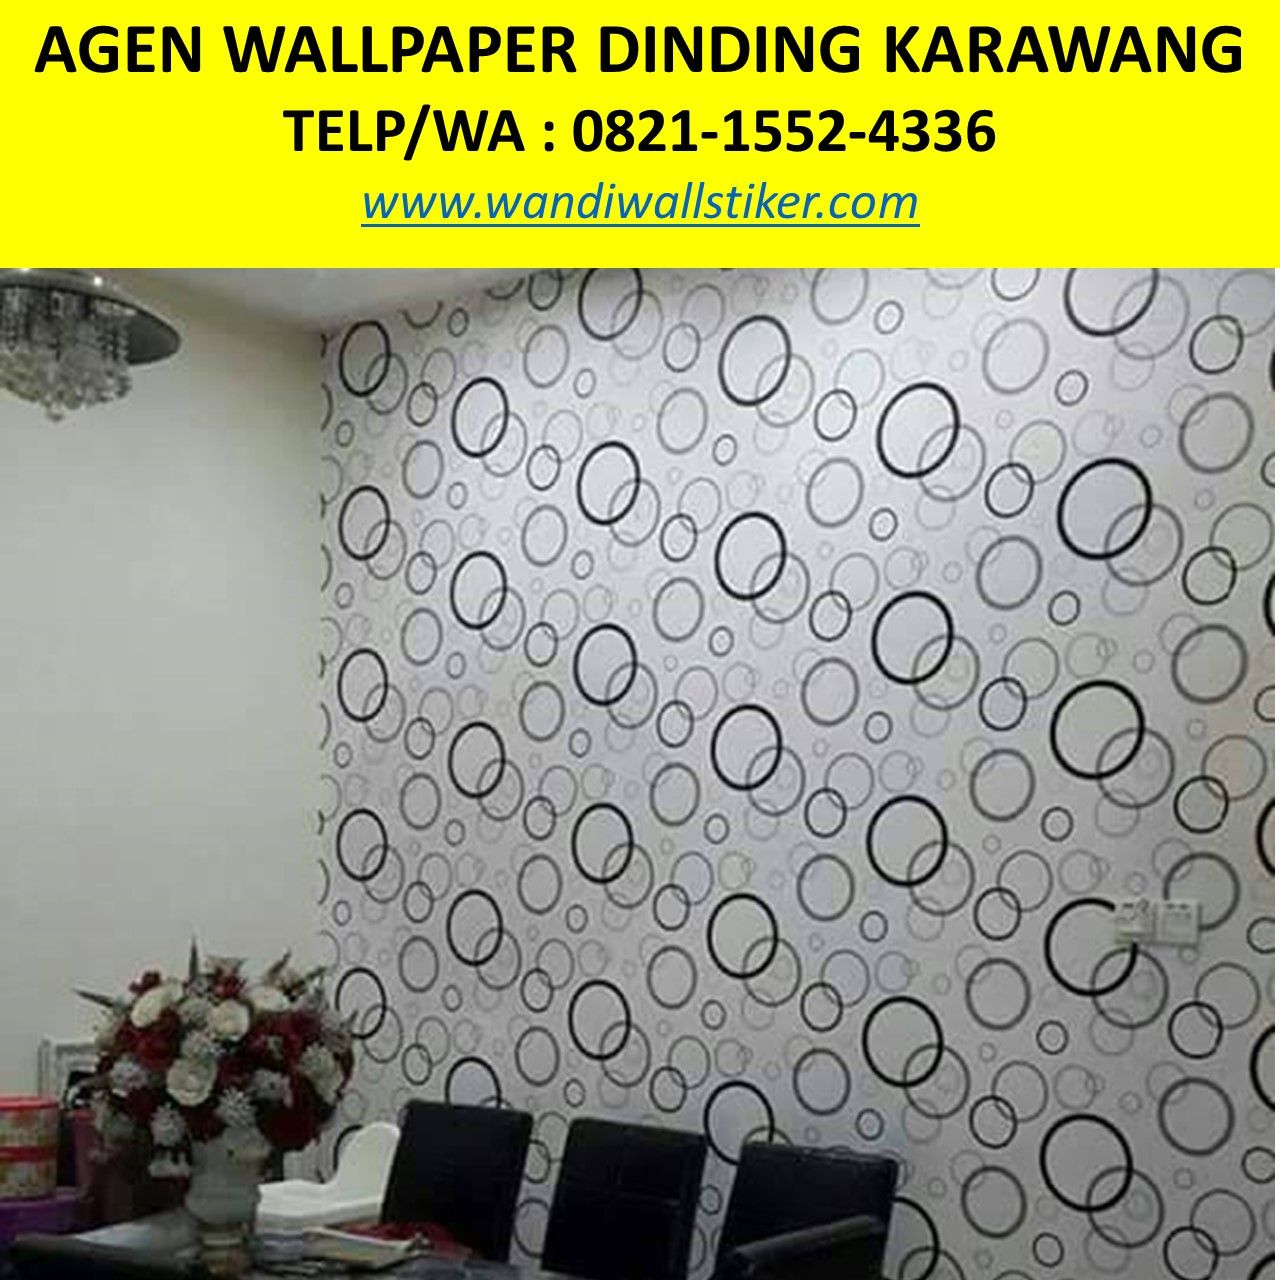 Wallpaper Dinding Awan Wallpaper Dinding Bunga Wallpaper